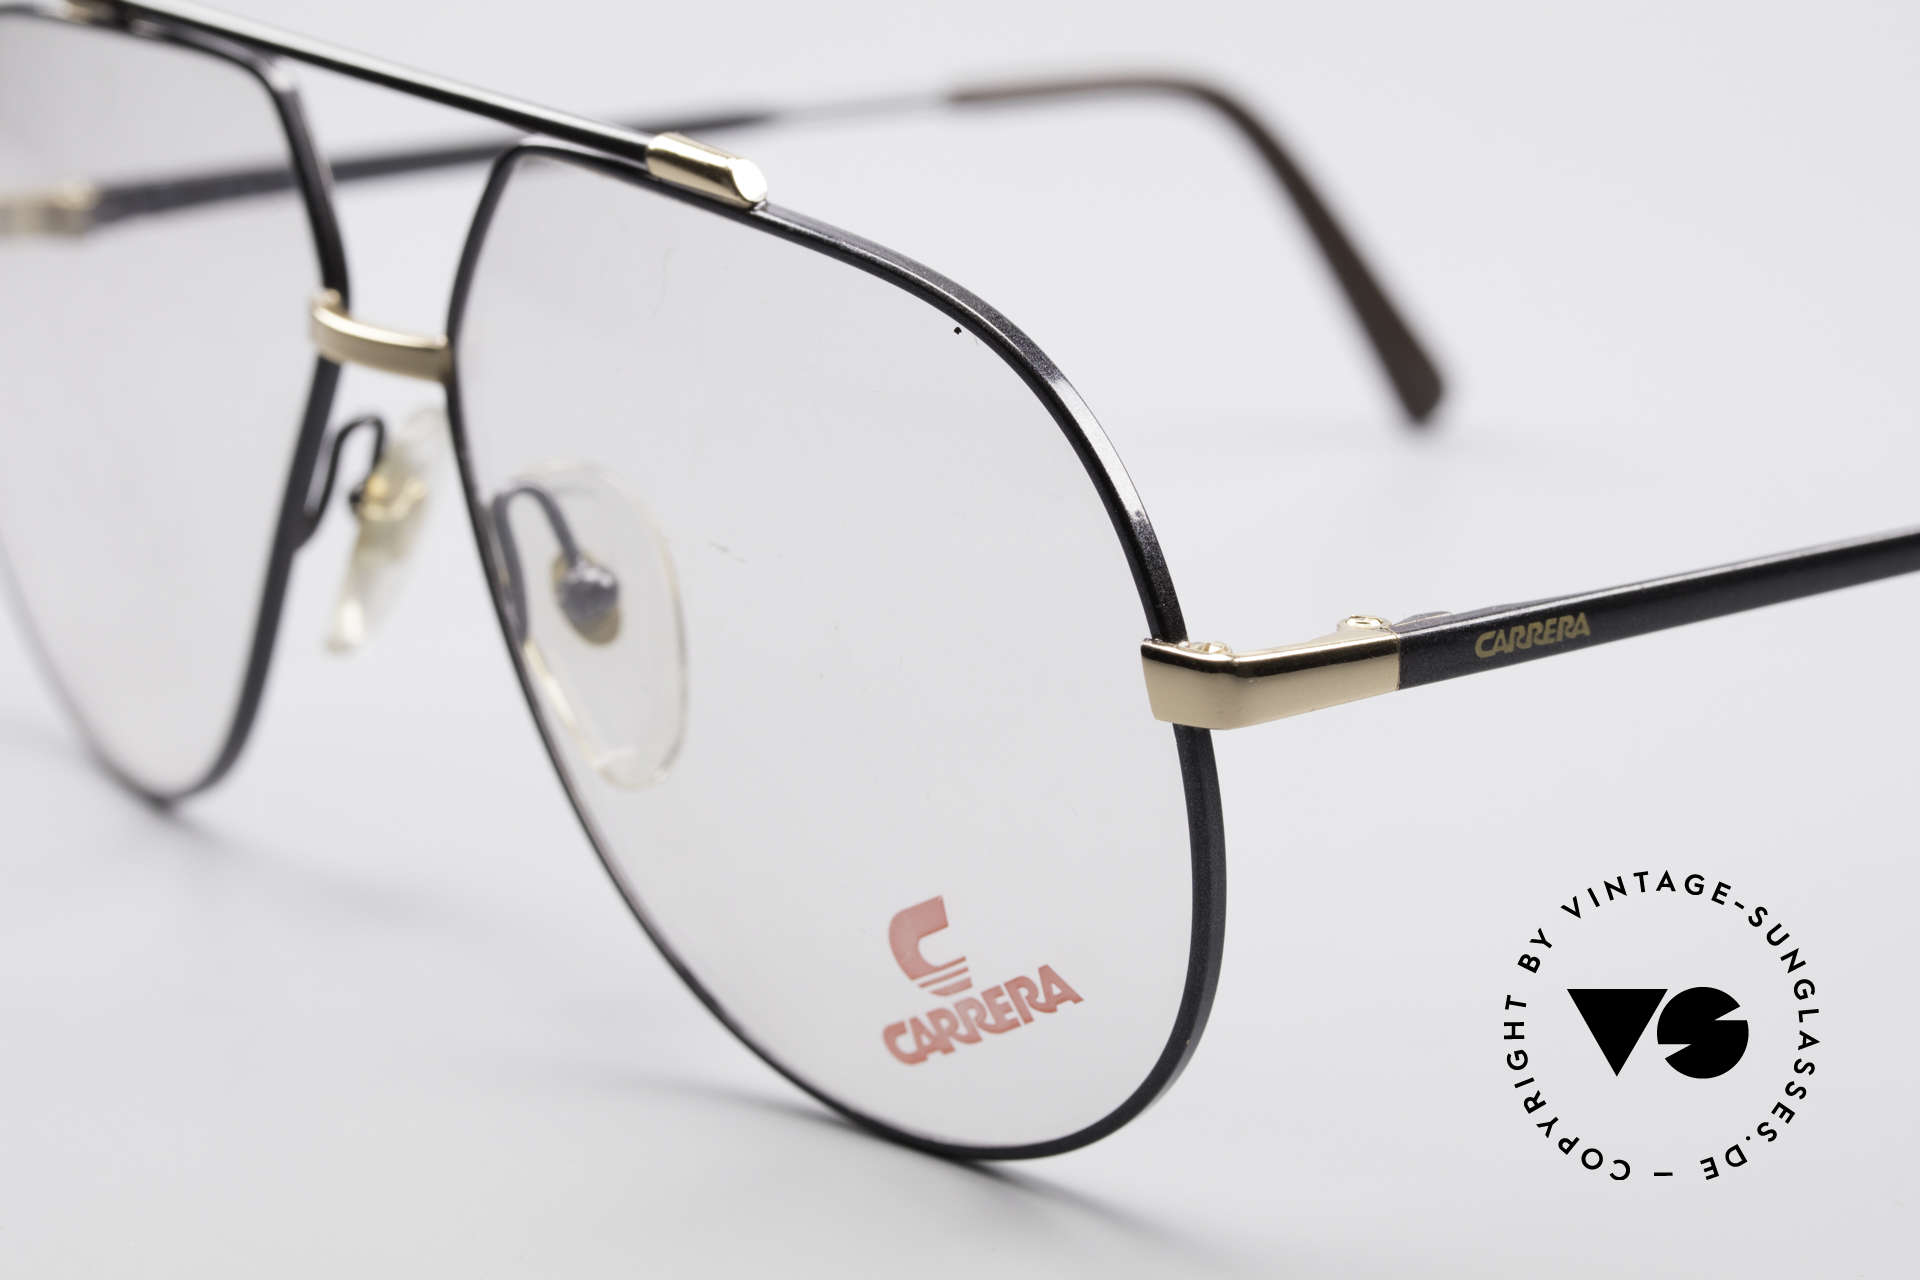 Carrera 5369 Large Vintage Eyeglasses, DEMO LENSES should be replaced with prescriptions, Made for Men